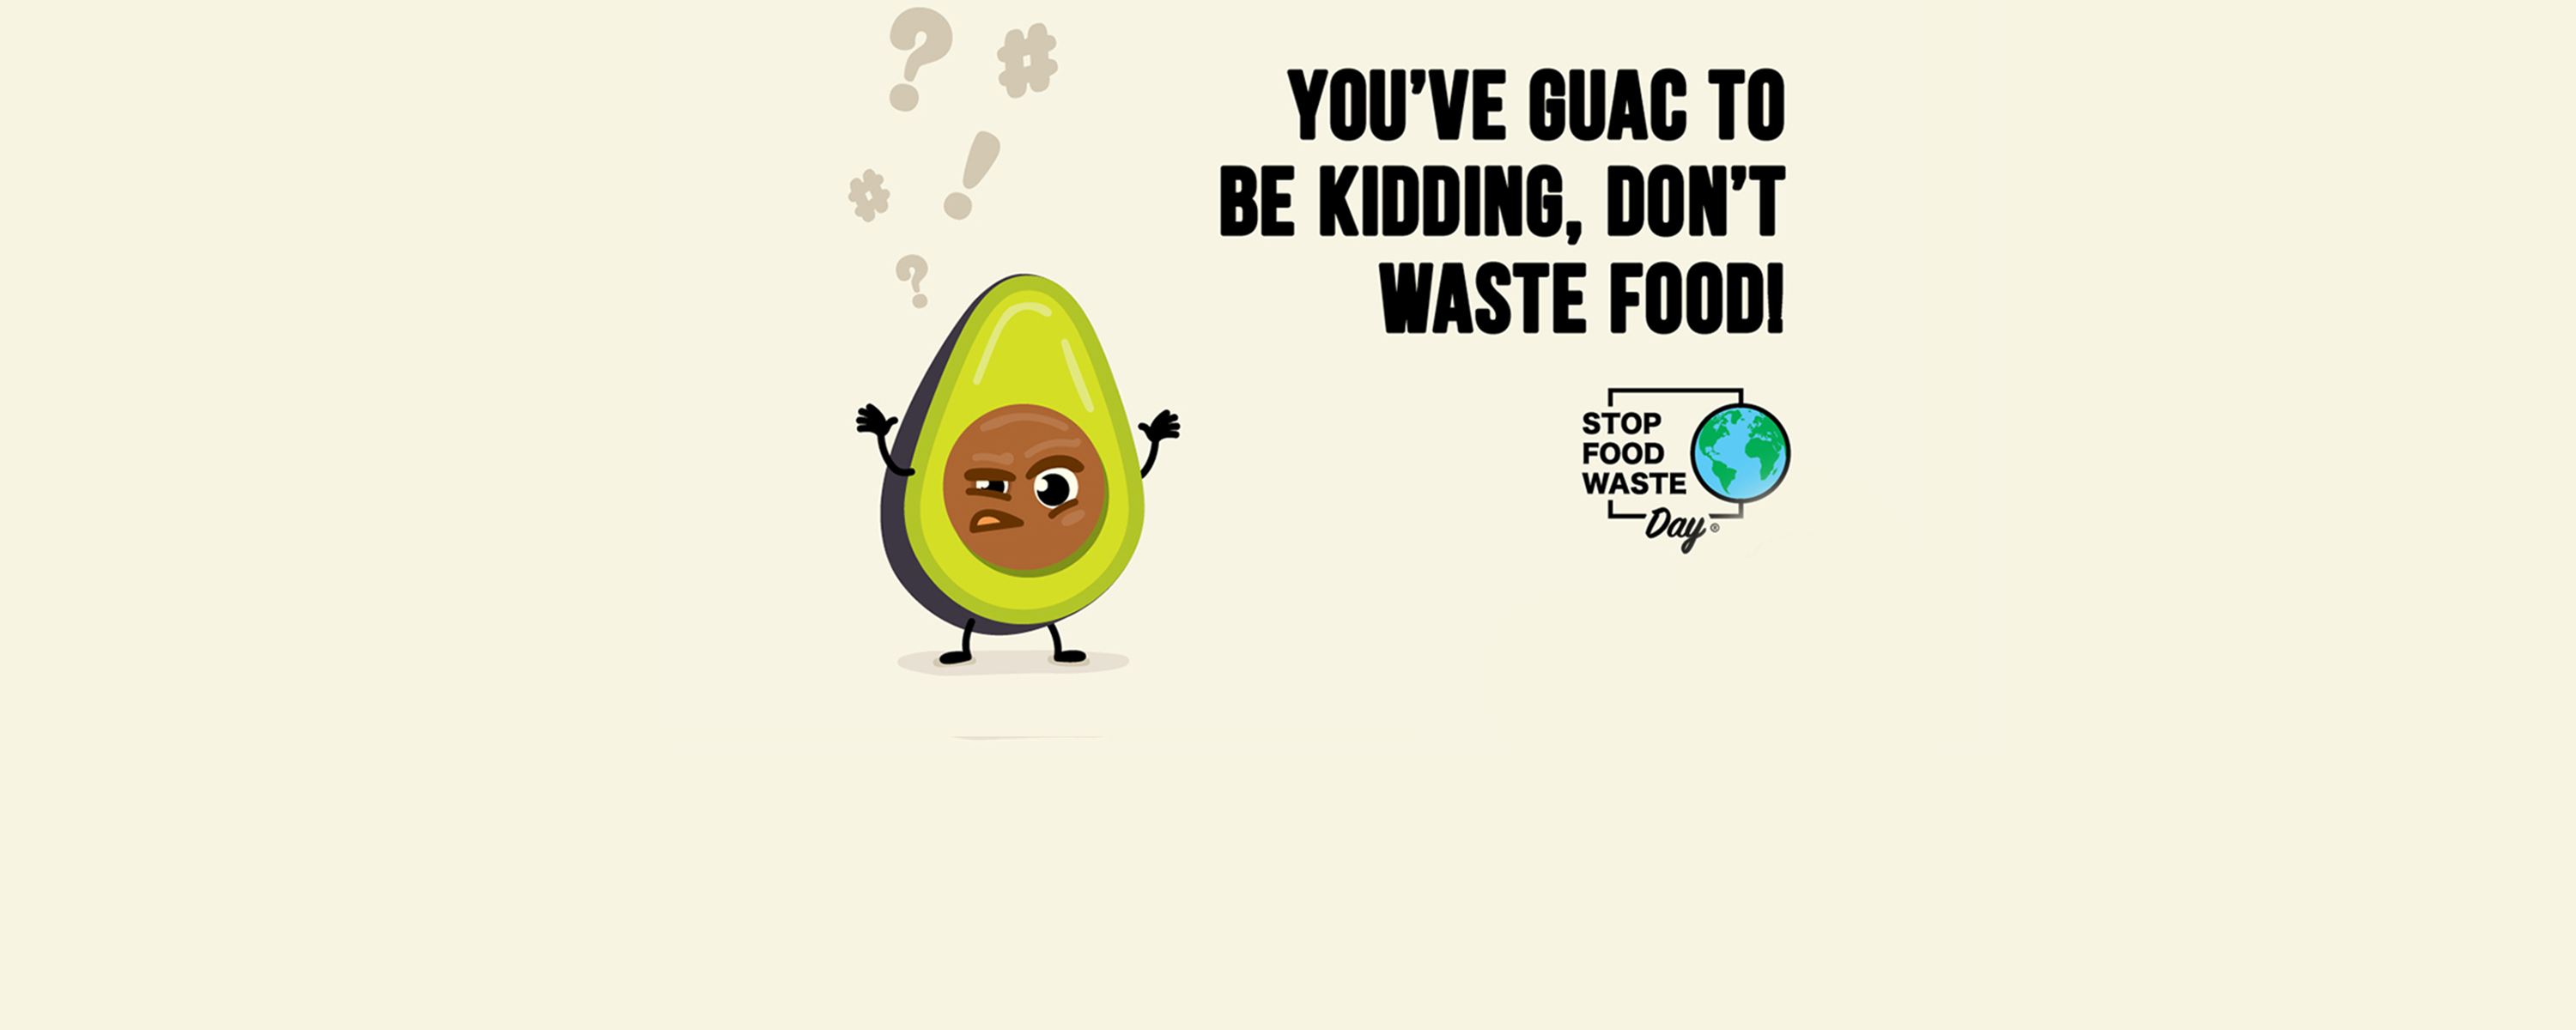 you've guac to be kidding, don't waste food